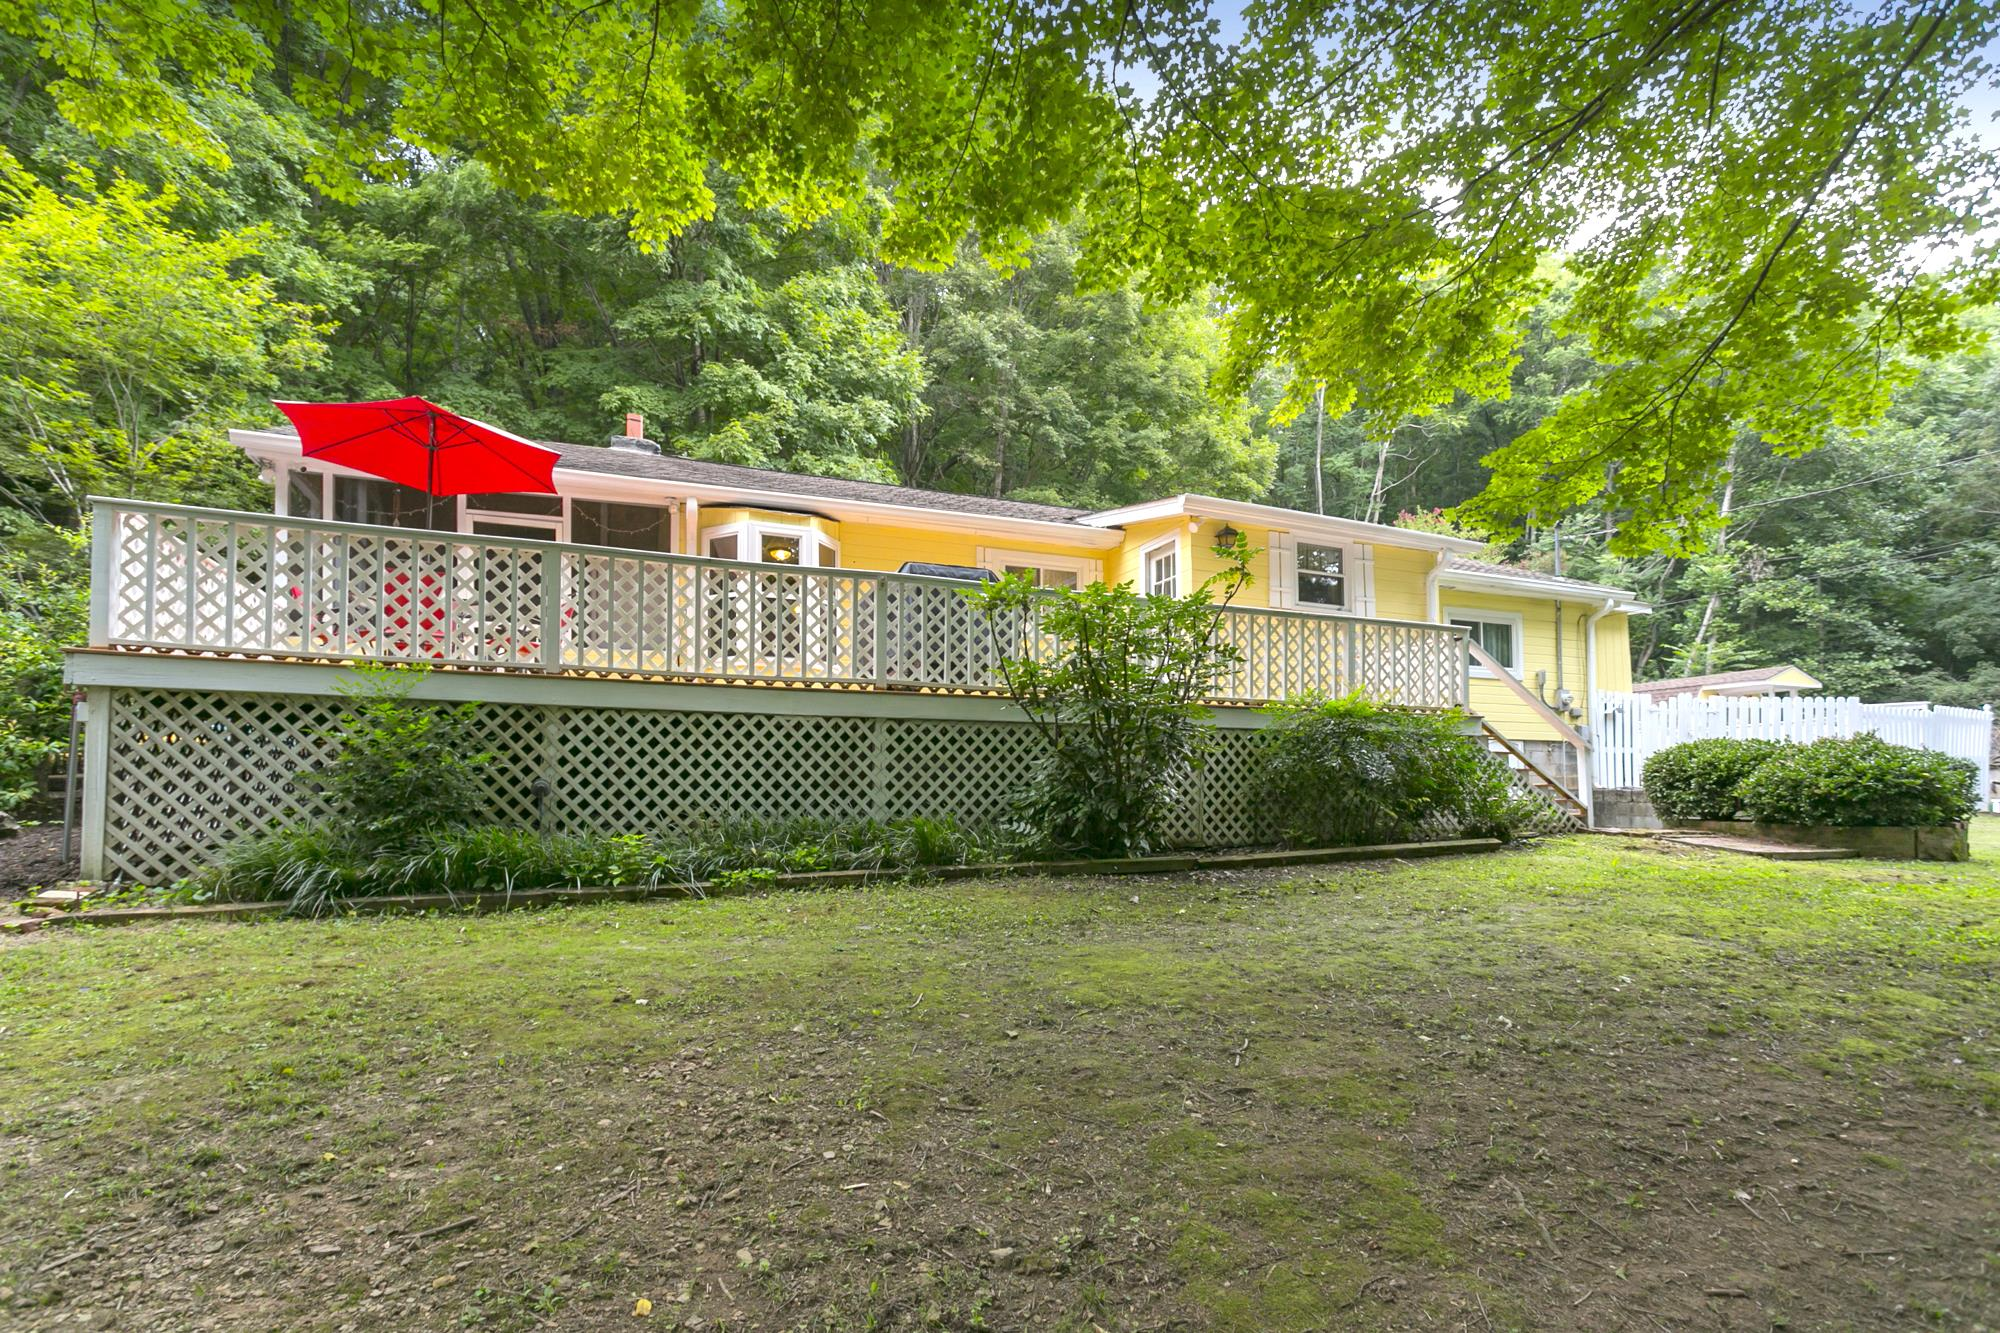 5870 Lickton Pike, Goodlettsville, TN 37072 - Goodlettsville, TN real estate listing